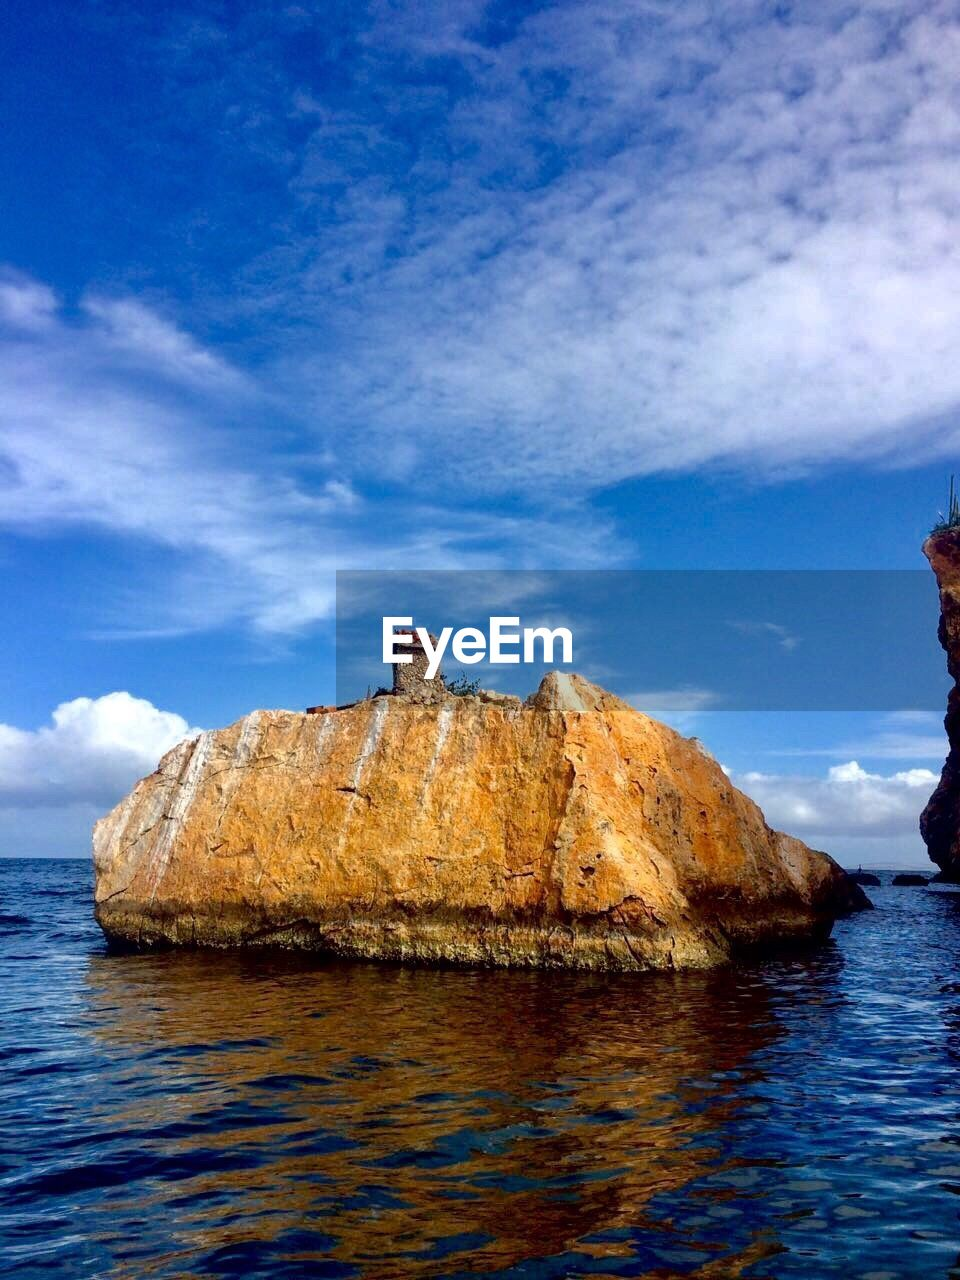 rock - object, sea, nature, rock formation, sky, water, tranquility, scenics, beauty in nature, tranquil scene, outdoors, cloud - sky, day, waterfront, horizon over water, cliff, blue, no people